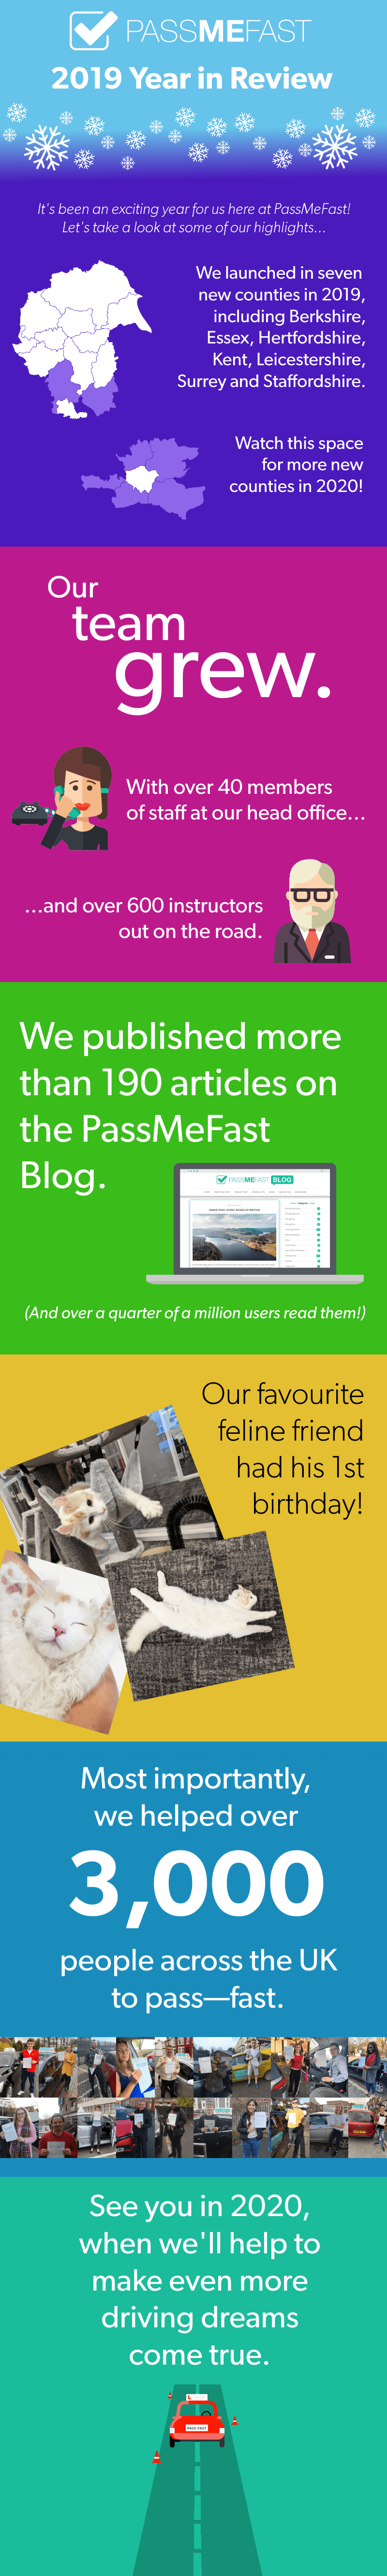 Infographic: PassMeFast 2019 Year in Review. It's been an exciting year for us here at PassMeFast! Let's take a look at some of our highlights. We launched in seven new counties in 2019, including Berkshire, Essex, Hertfordshire, Kent, Leicestershire, Surrey and Staffordshire. Watch this space for more new counties in 2020! Our team grew, with over 40 members of staff at our head office and over 600 instructors out on the road. We published more than 190 articles on the PassMeFast Blog - and over a quarter of a million users read them. Our favourite feline friend had his first birthday! And most importantly, we helped over 3,000 people across the UK to pass fast. See you in 2020, when we'll help to make even more driving dreams come true.